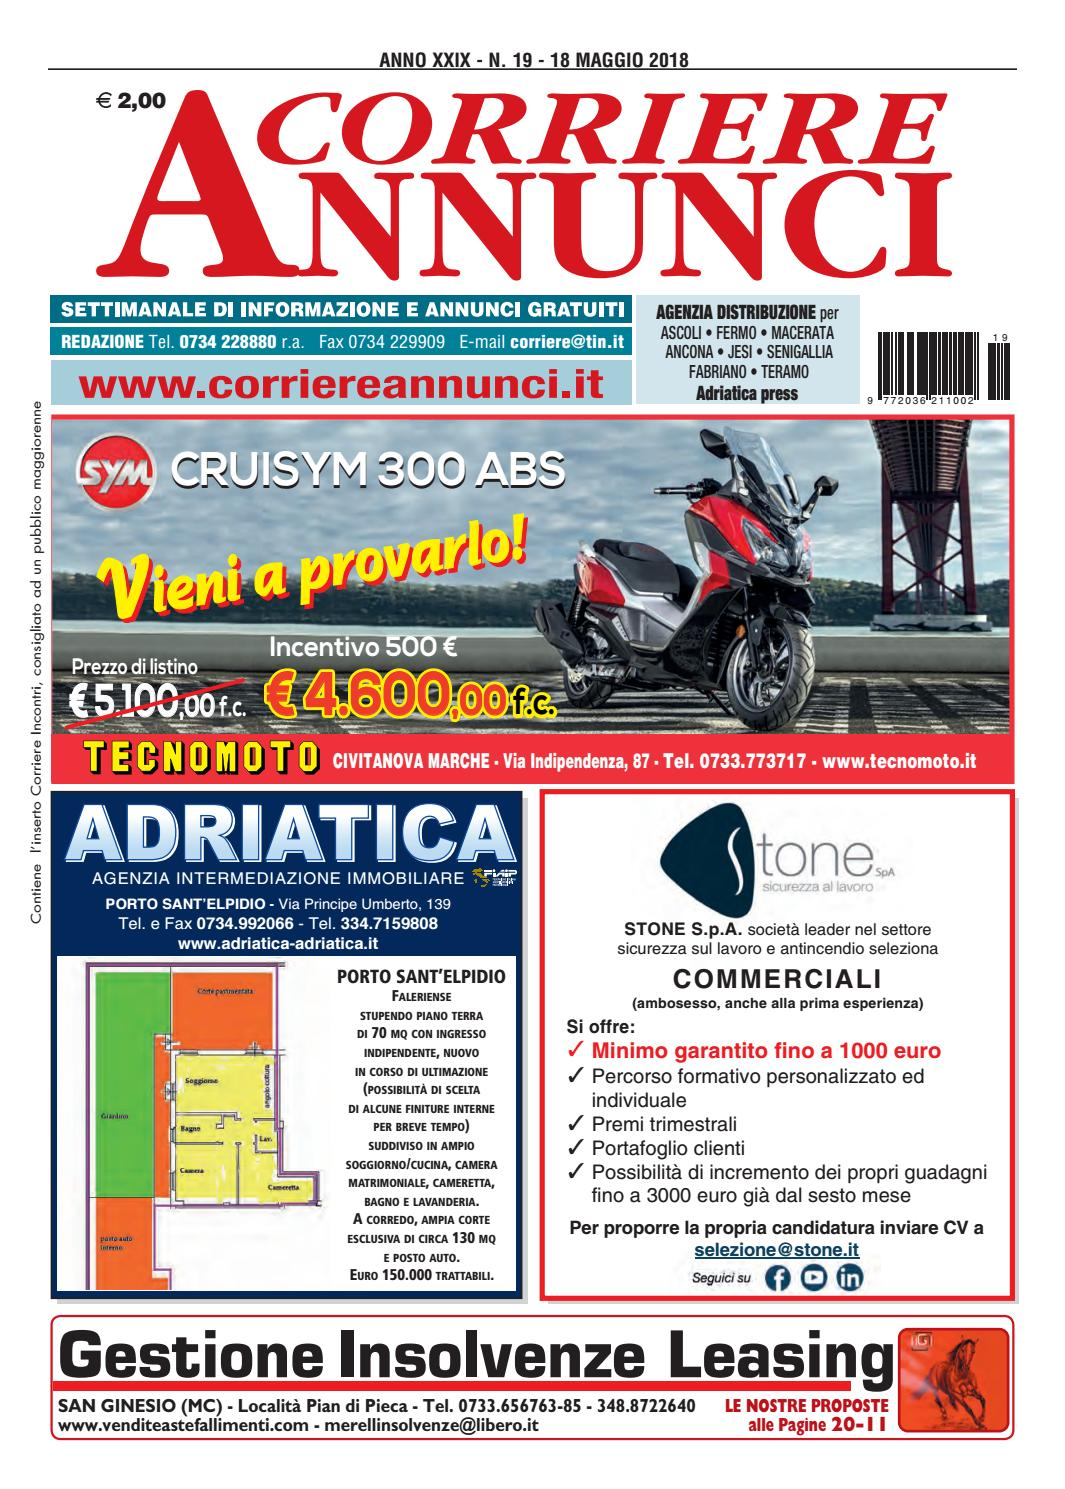 Corriere 19 2018 by Corriere Annunci - issuu f7d64171fce1